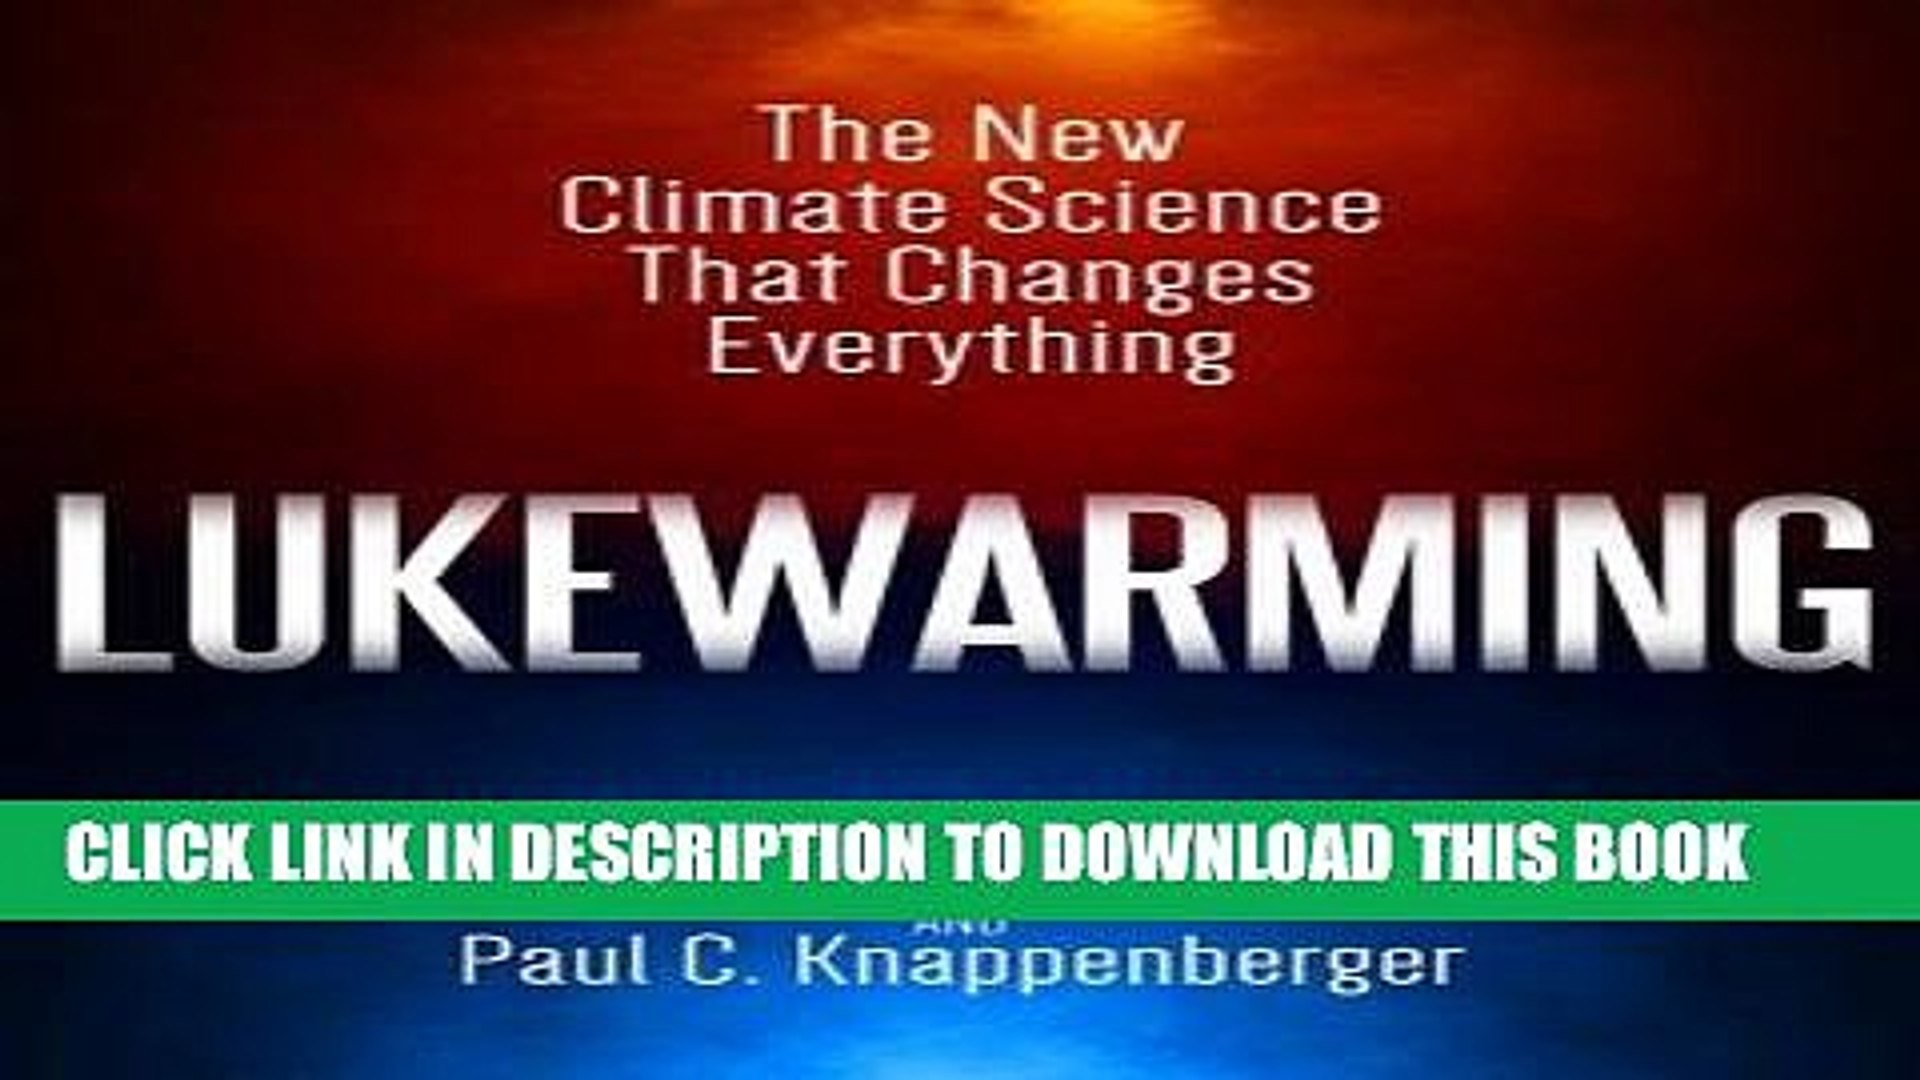 Lukewarming The New Climate Science that Changes Everything